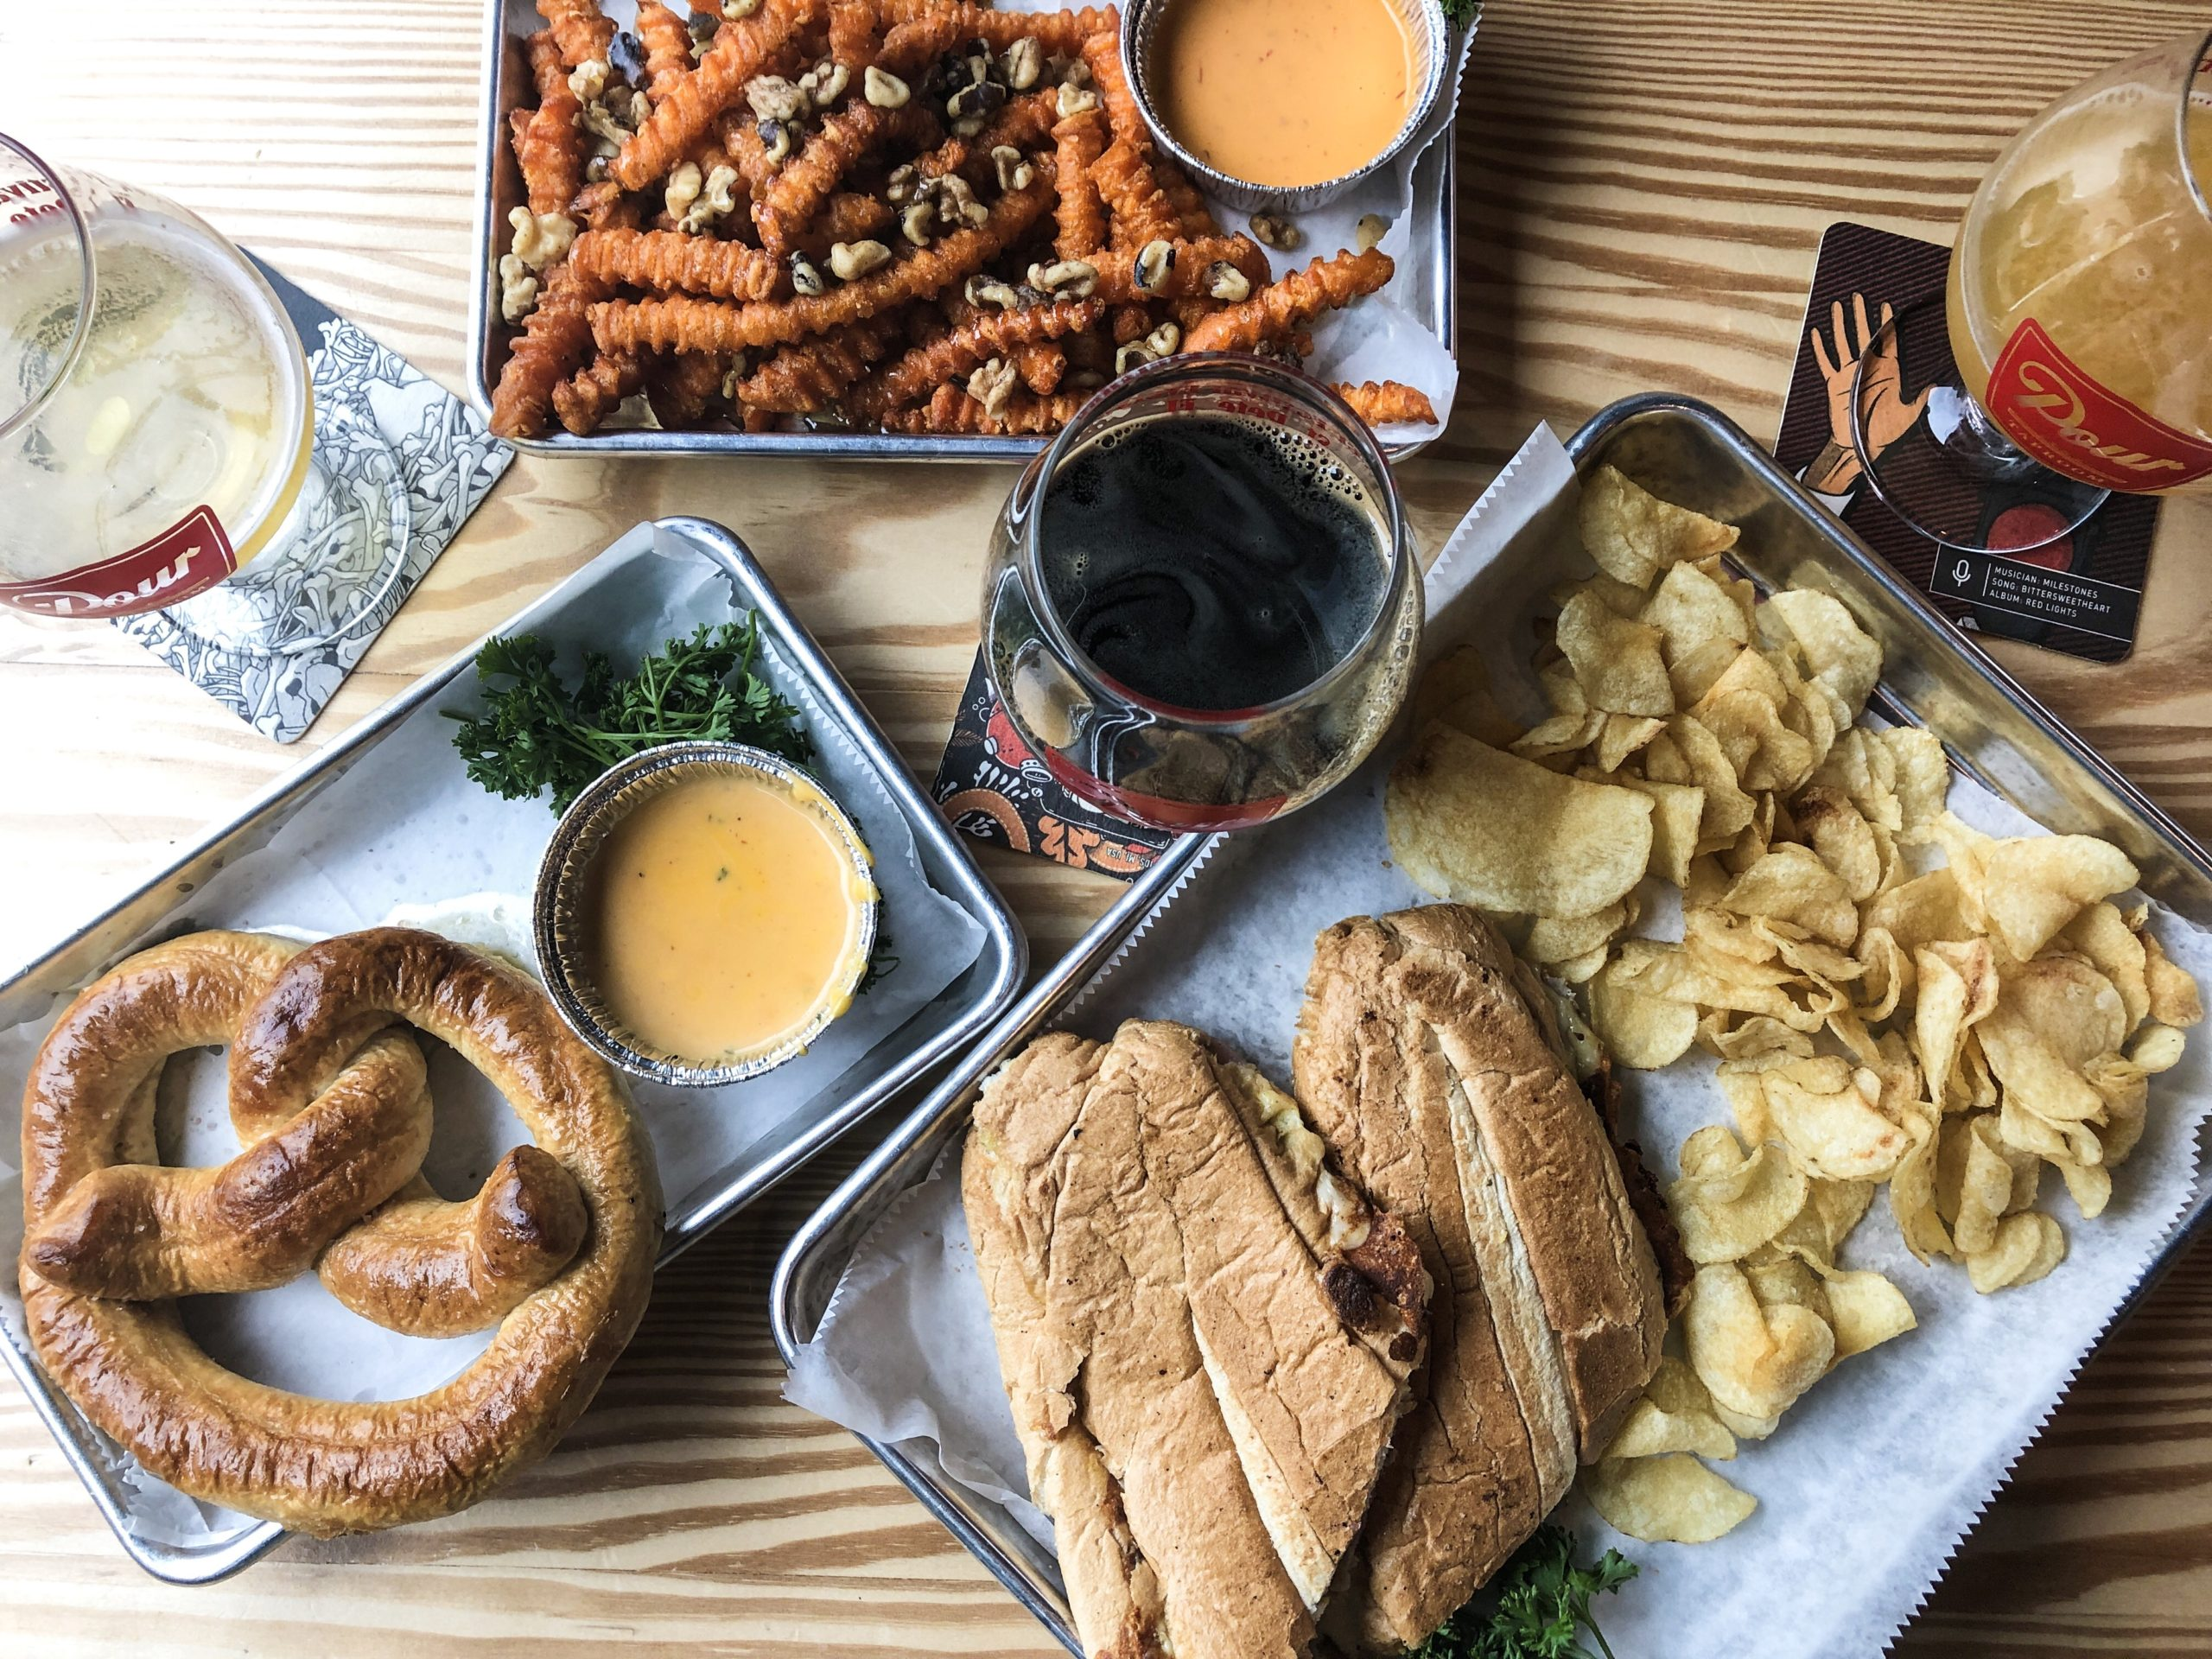 Pour Taproom: Now Offering Bites with their 85 Beverage Taps